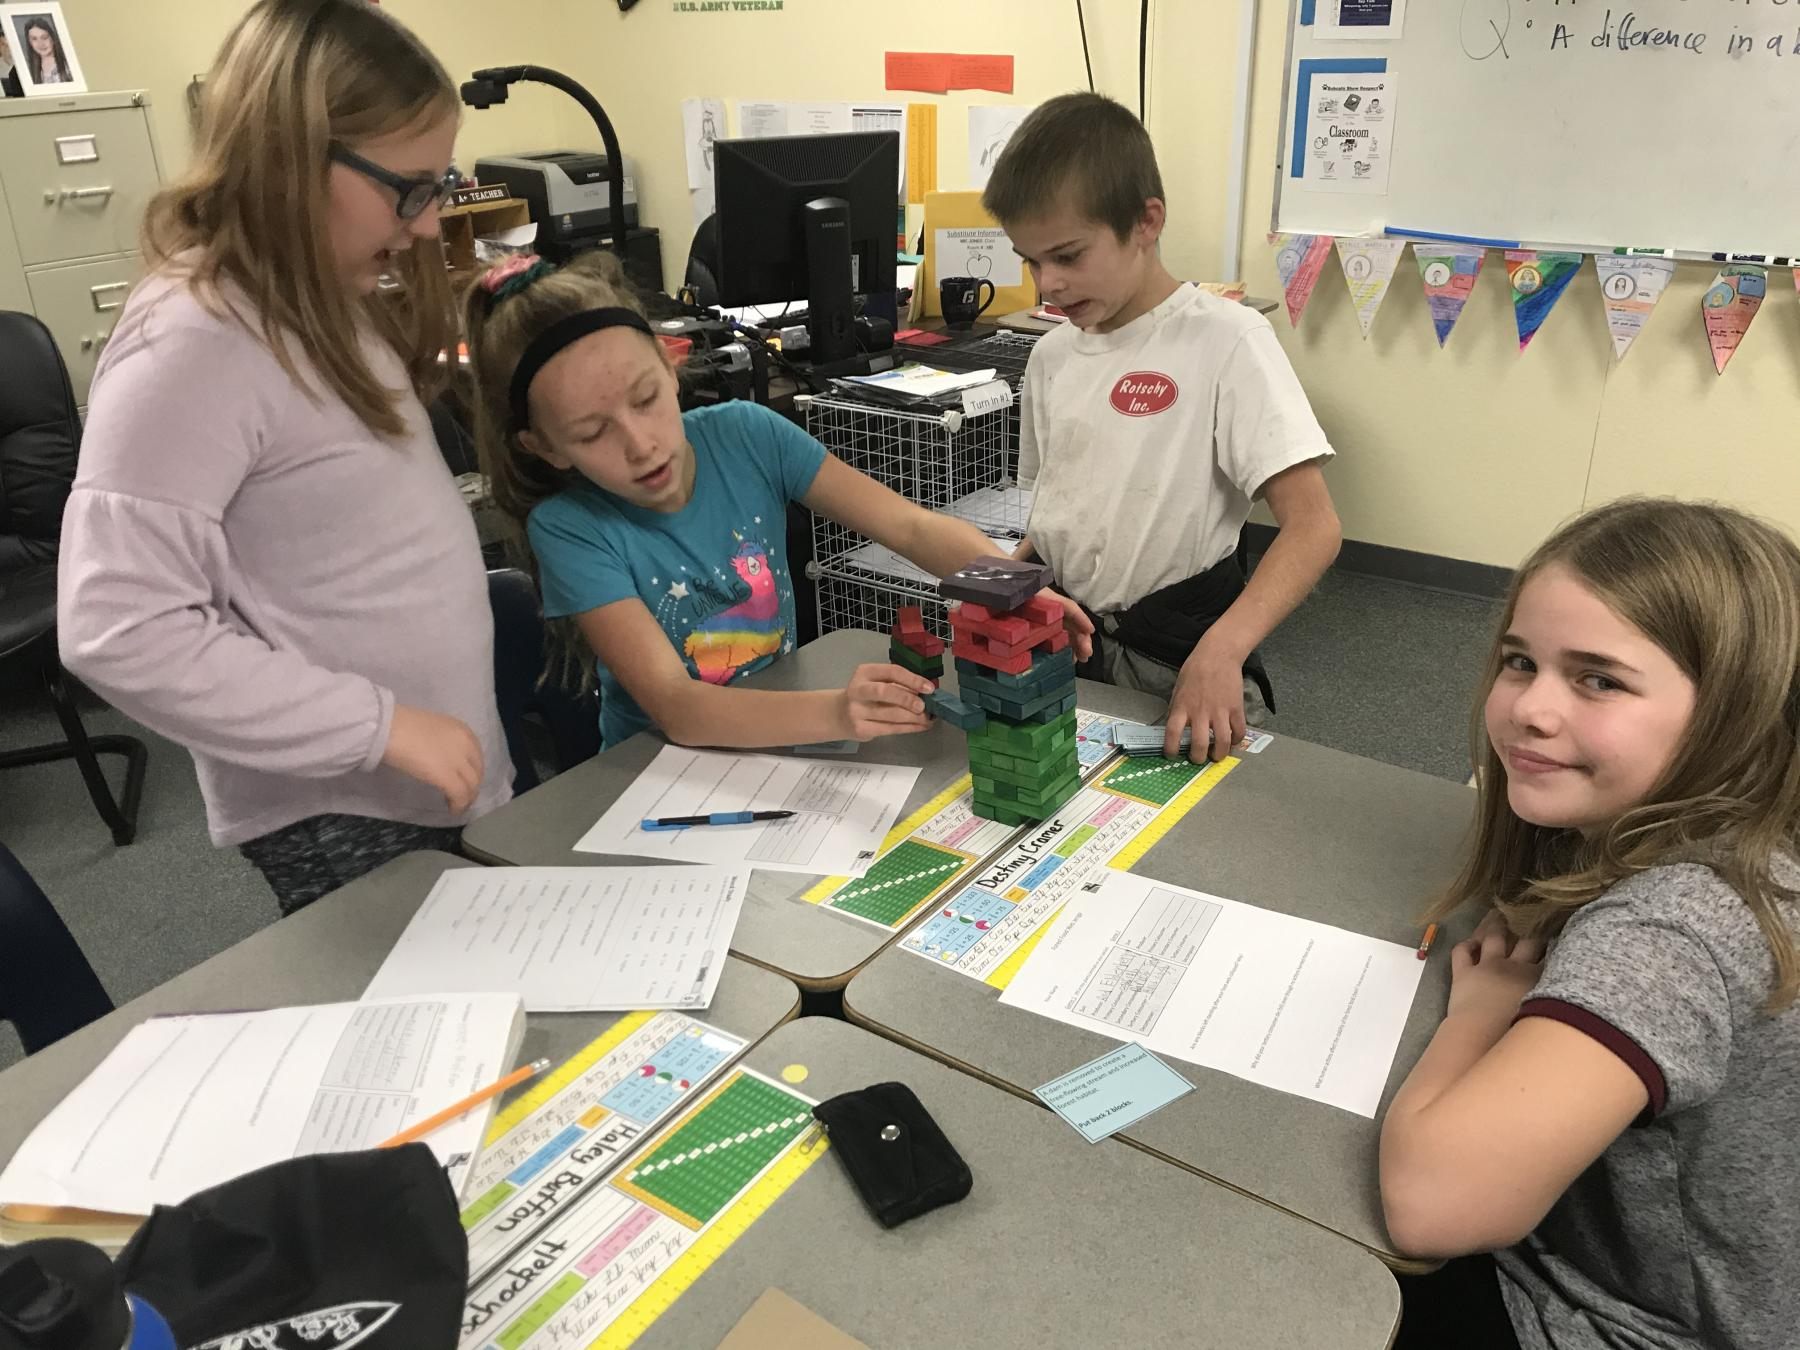 Four students collaborate on a science activity